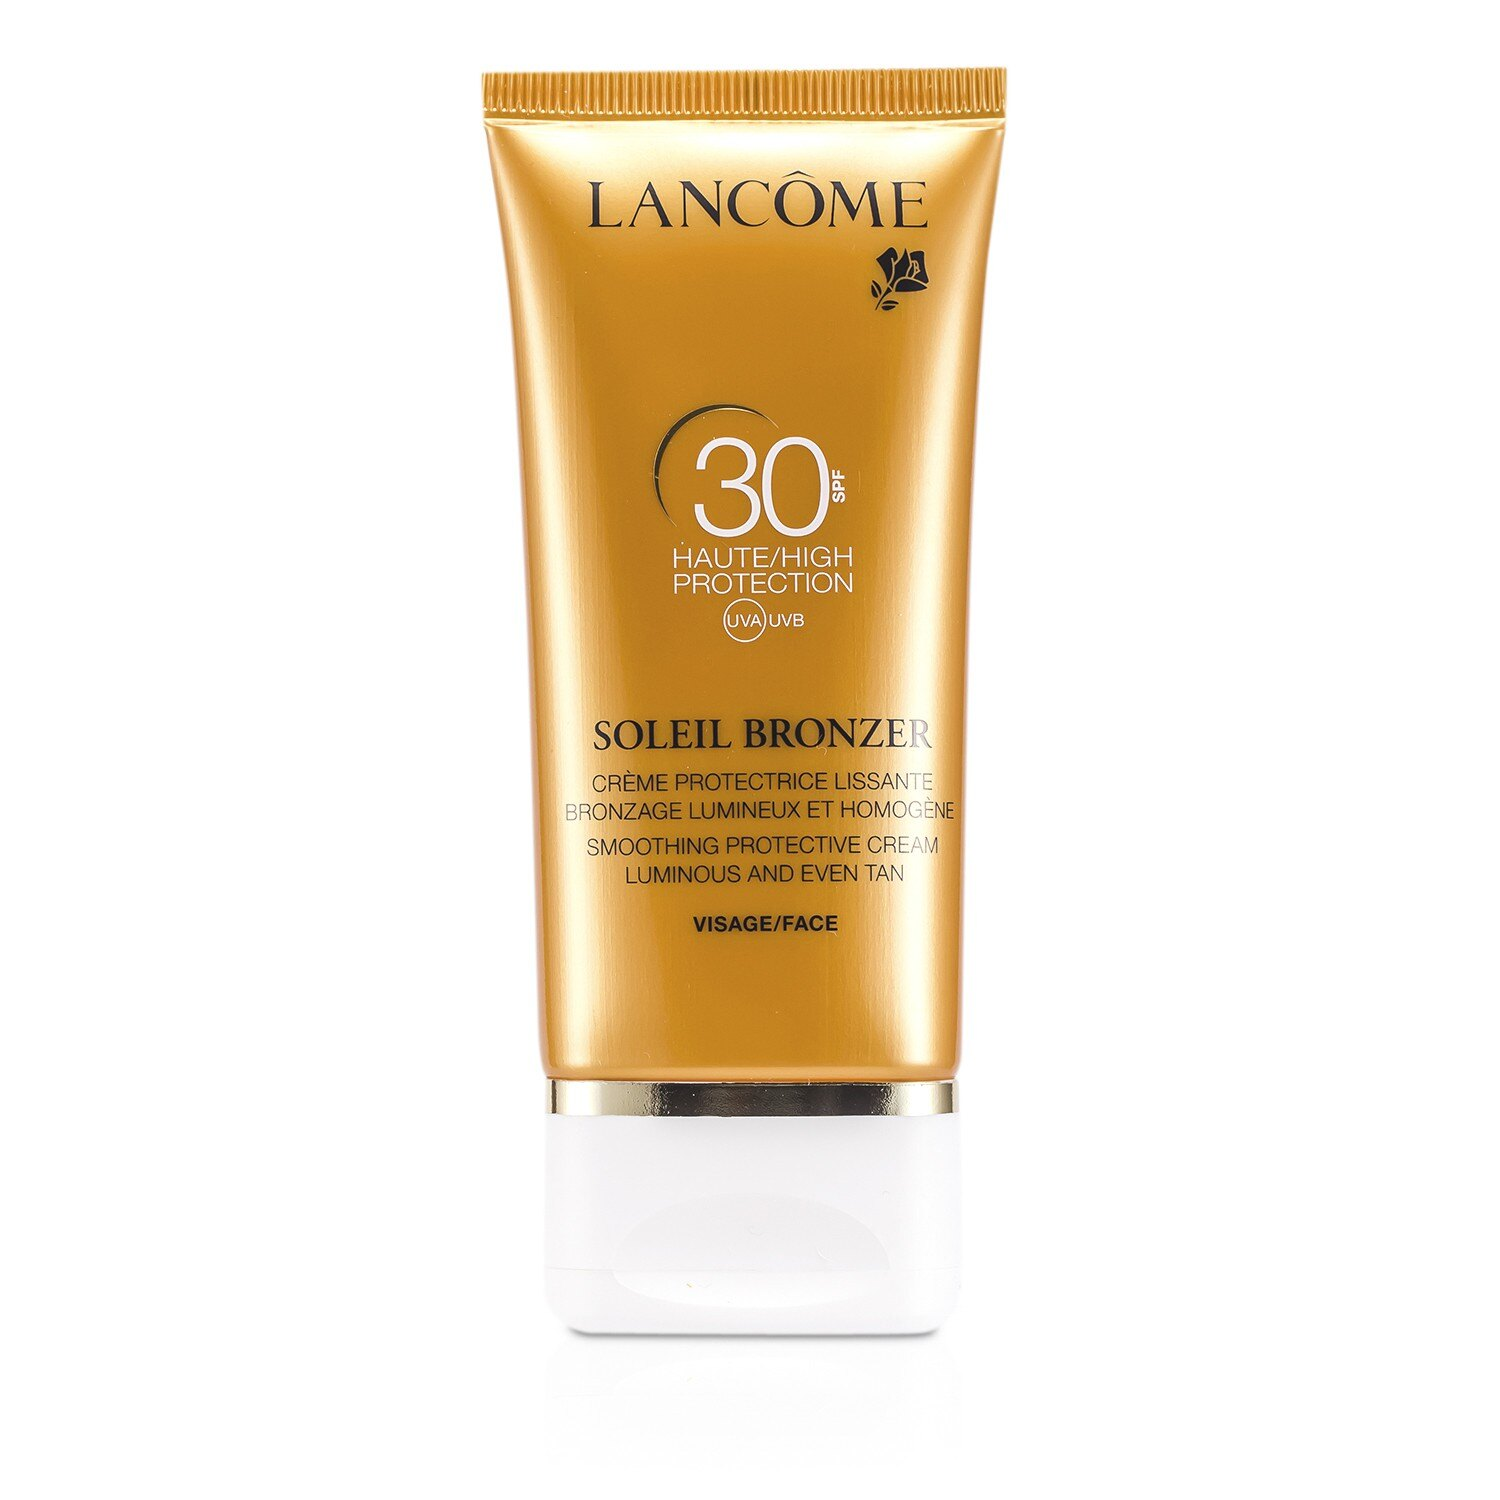 Lancome 蘭蔻 清爽古銅舒緩防曬霜SPF30 Soleil Bronzer Smoothing Protective Cream SPF30 50ml/1.69oz